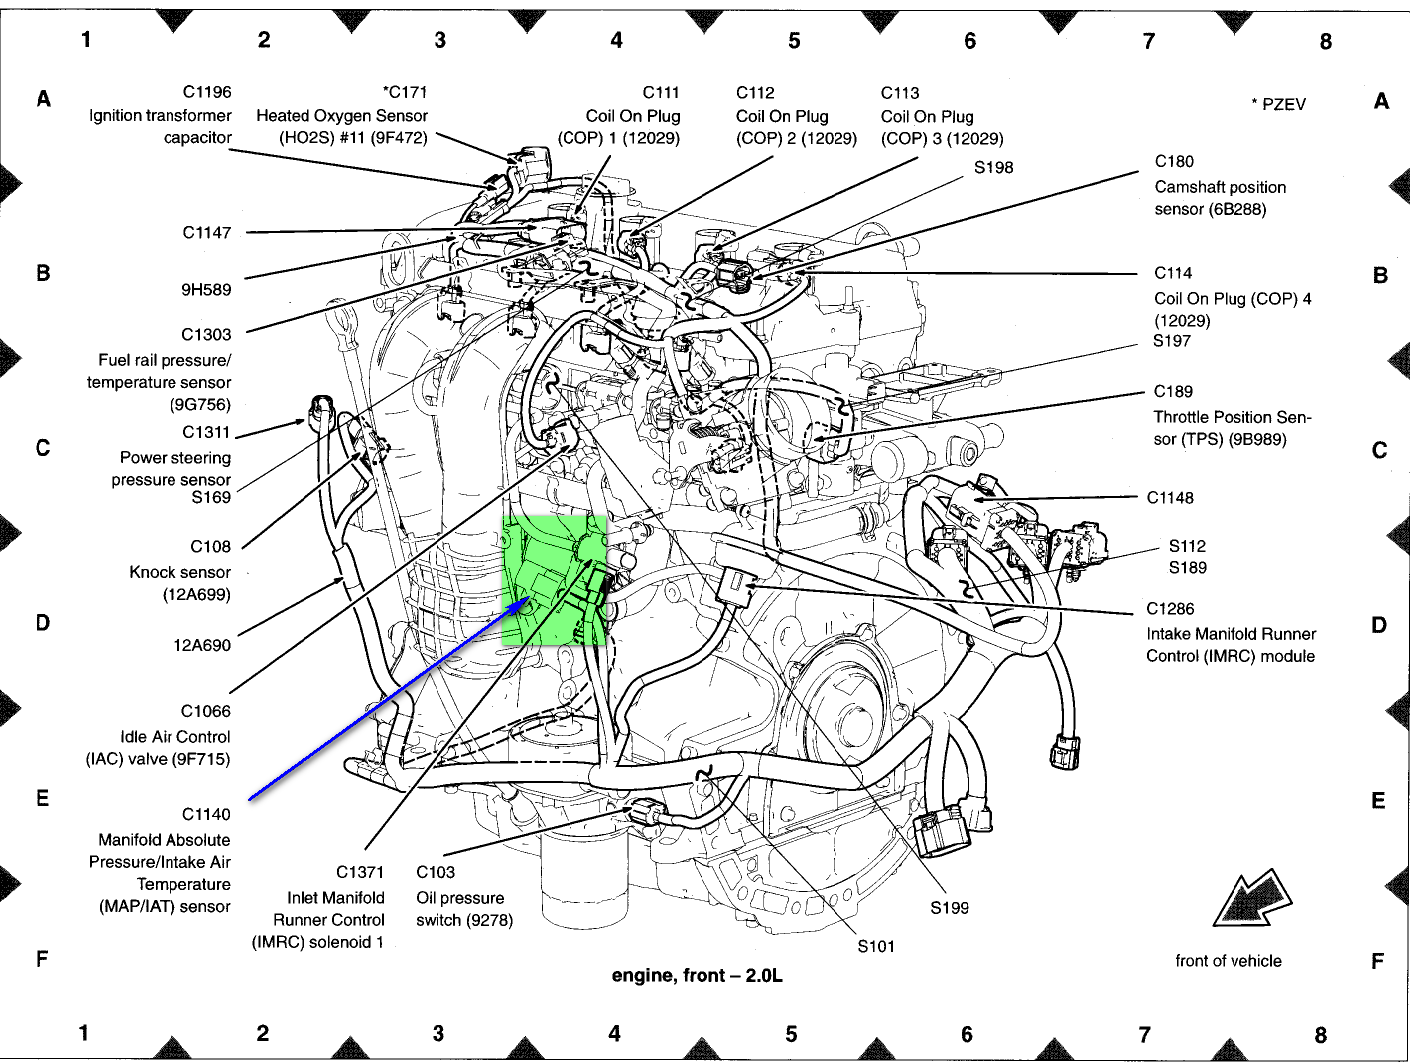 2016 Ford Focus Zx5 Heater Wiring Diagram